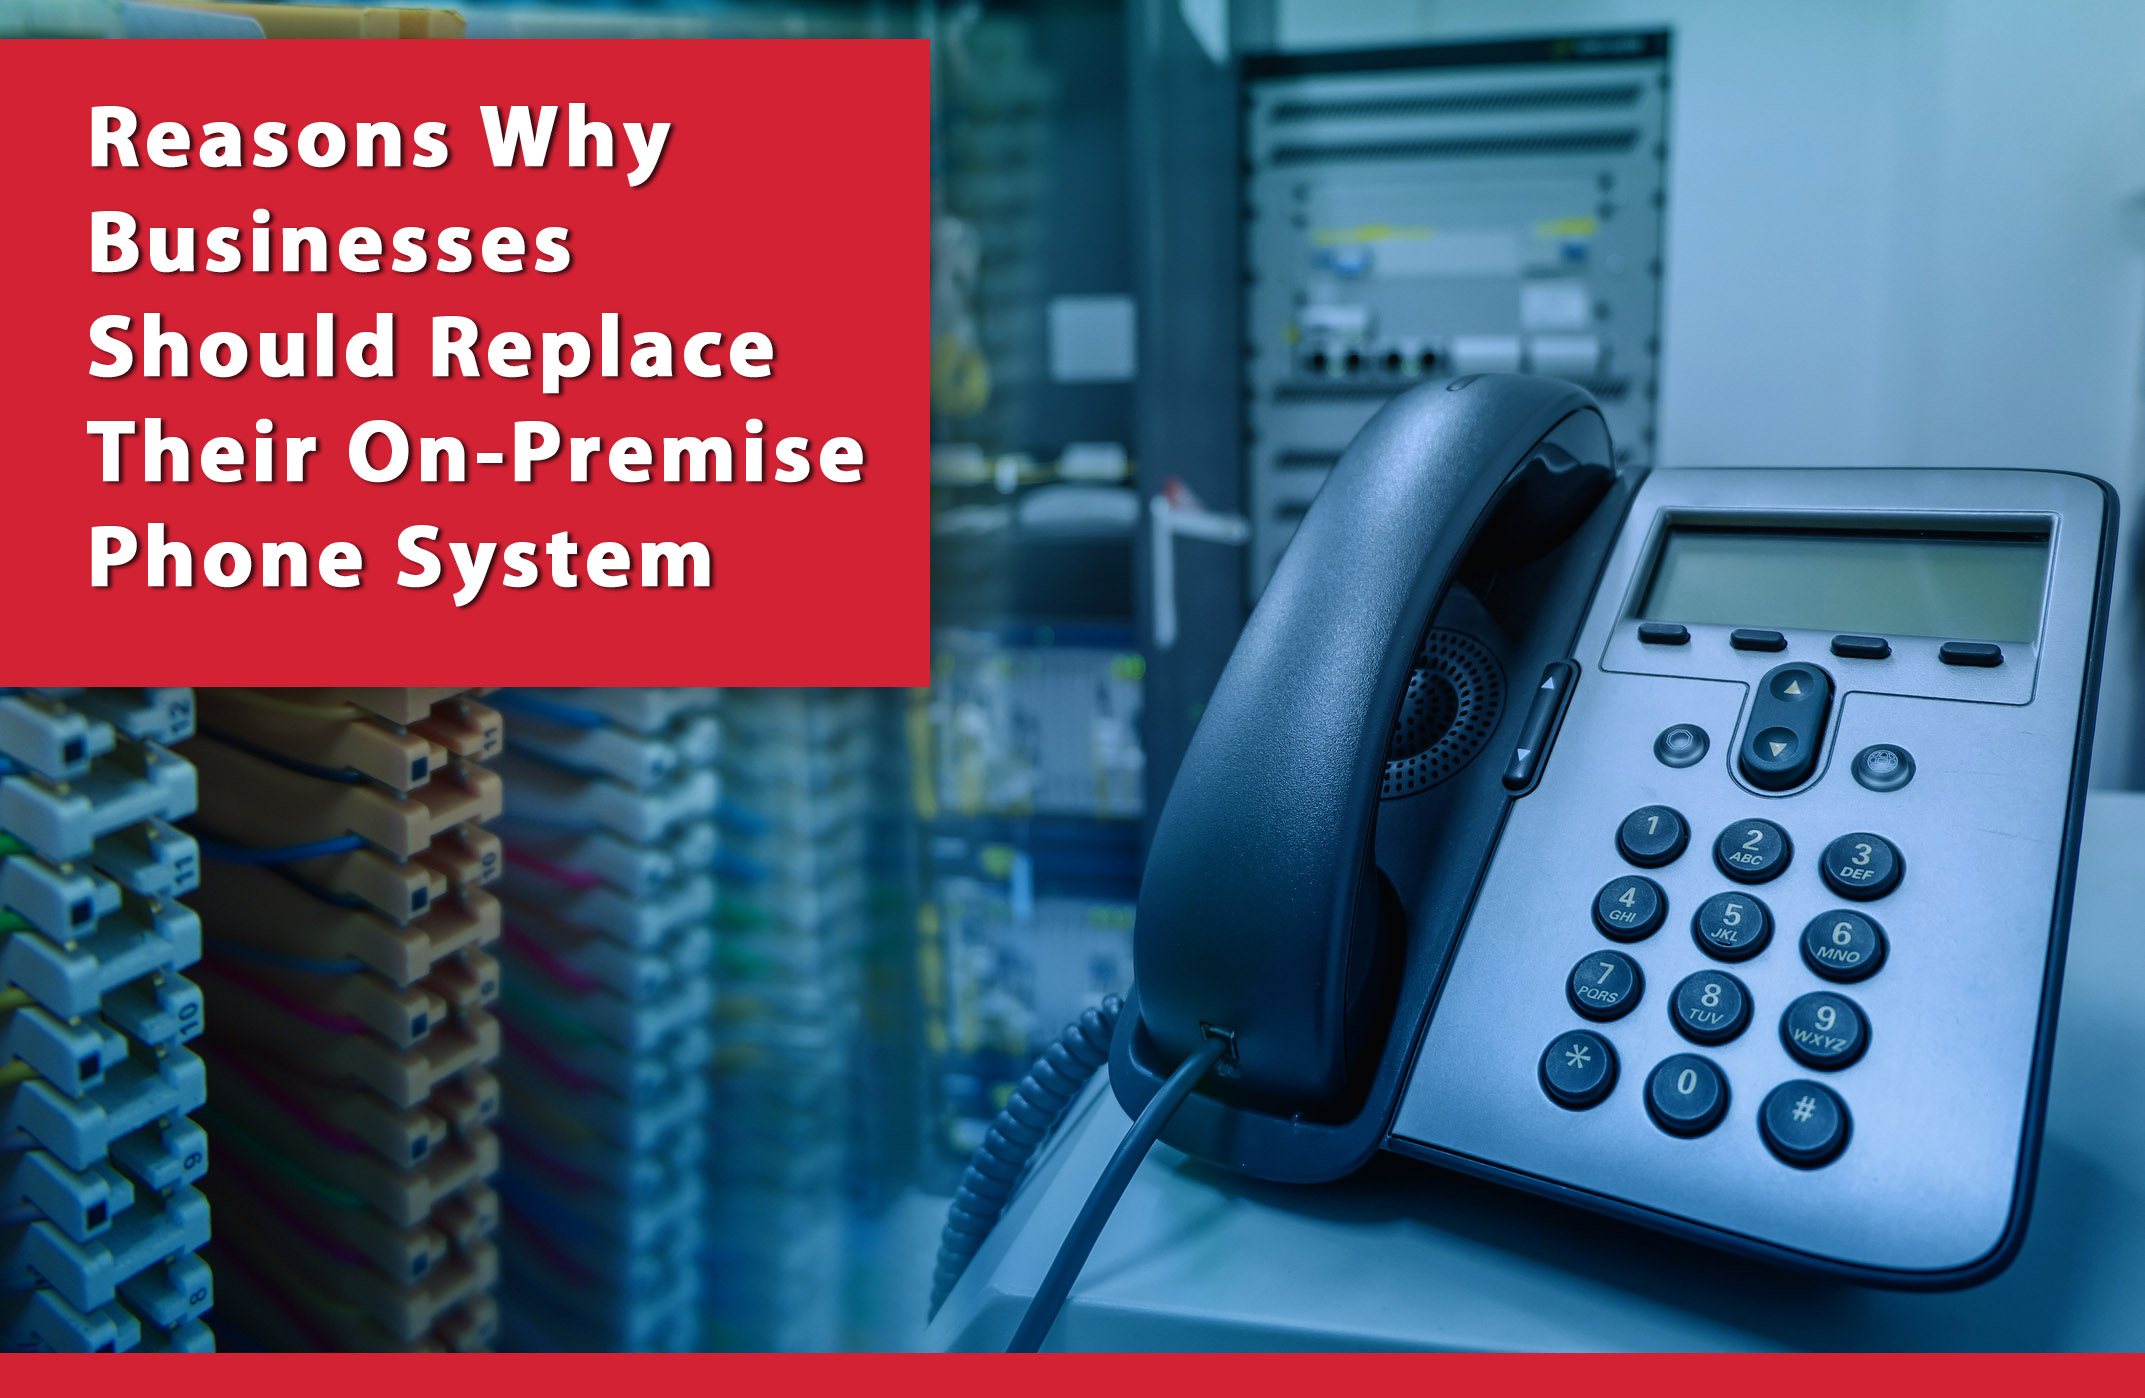 Reasons Why Your Business Should Replace Their On-Premise Phone System and Move to the Cloud